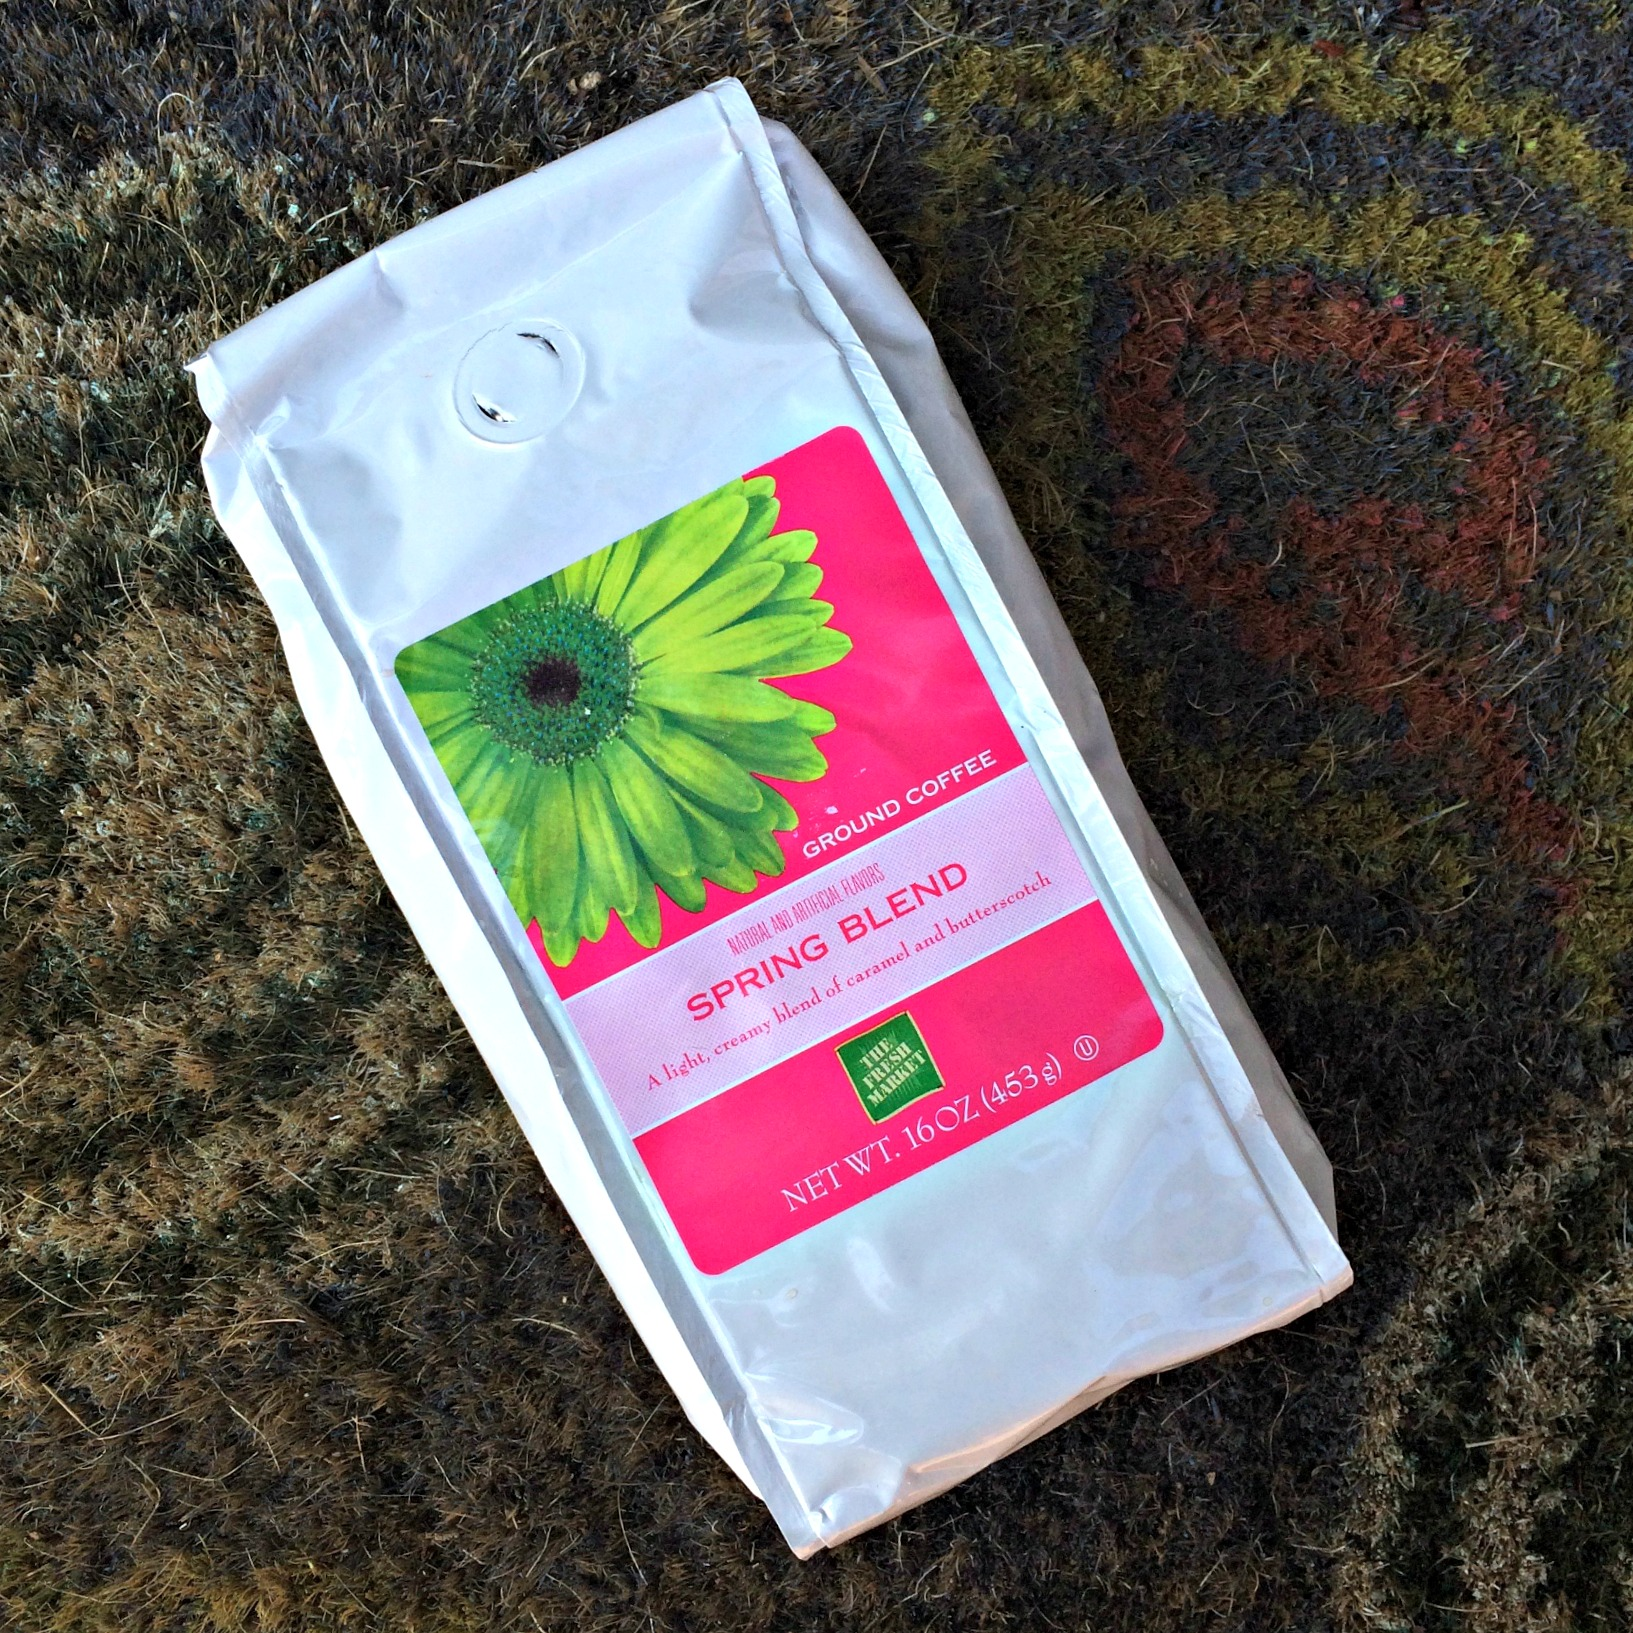 fresh market spring blend coffee